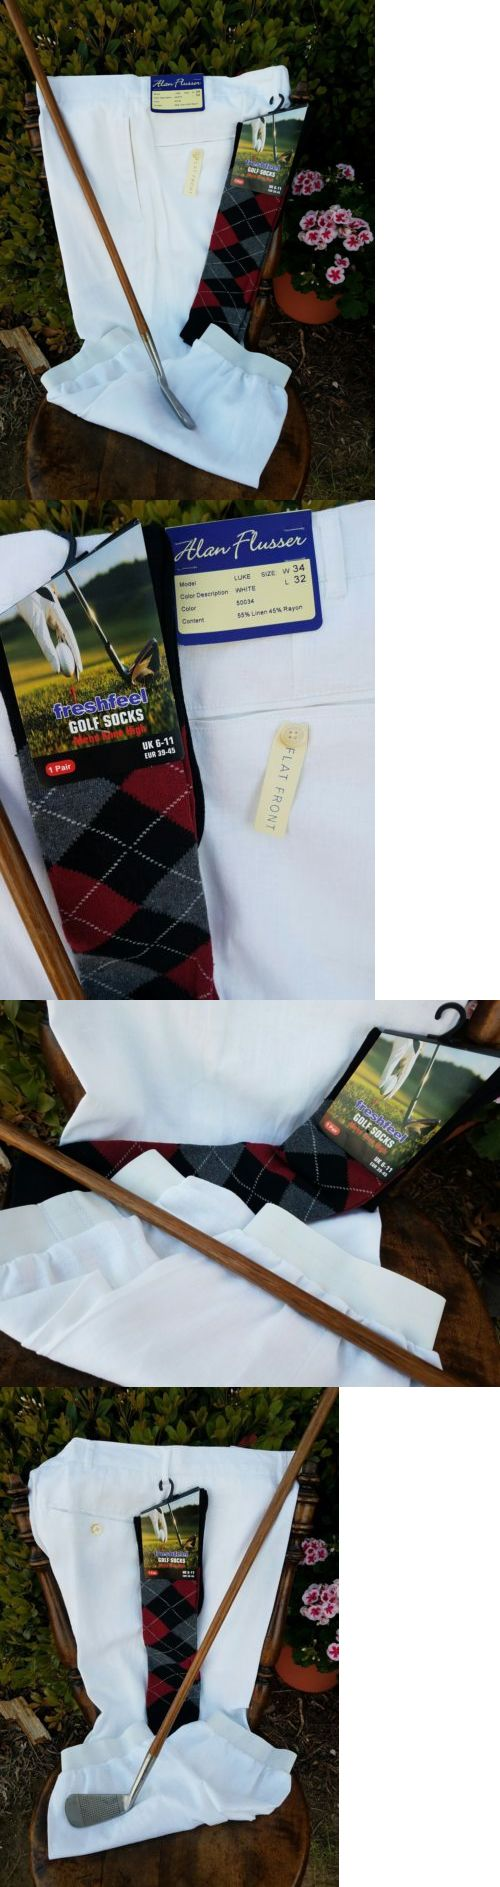 Other Golf Clothing 158939: Golf Knickers 34 Nwt! Alan Flusser Linen Rayon! New Argyles! Nice! -> BUY IT NOW ONLY: $36.95 on eBay!